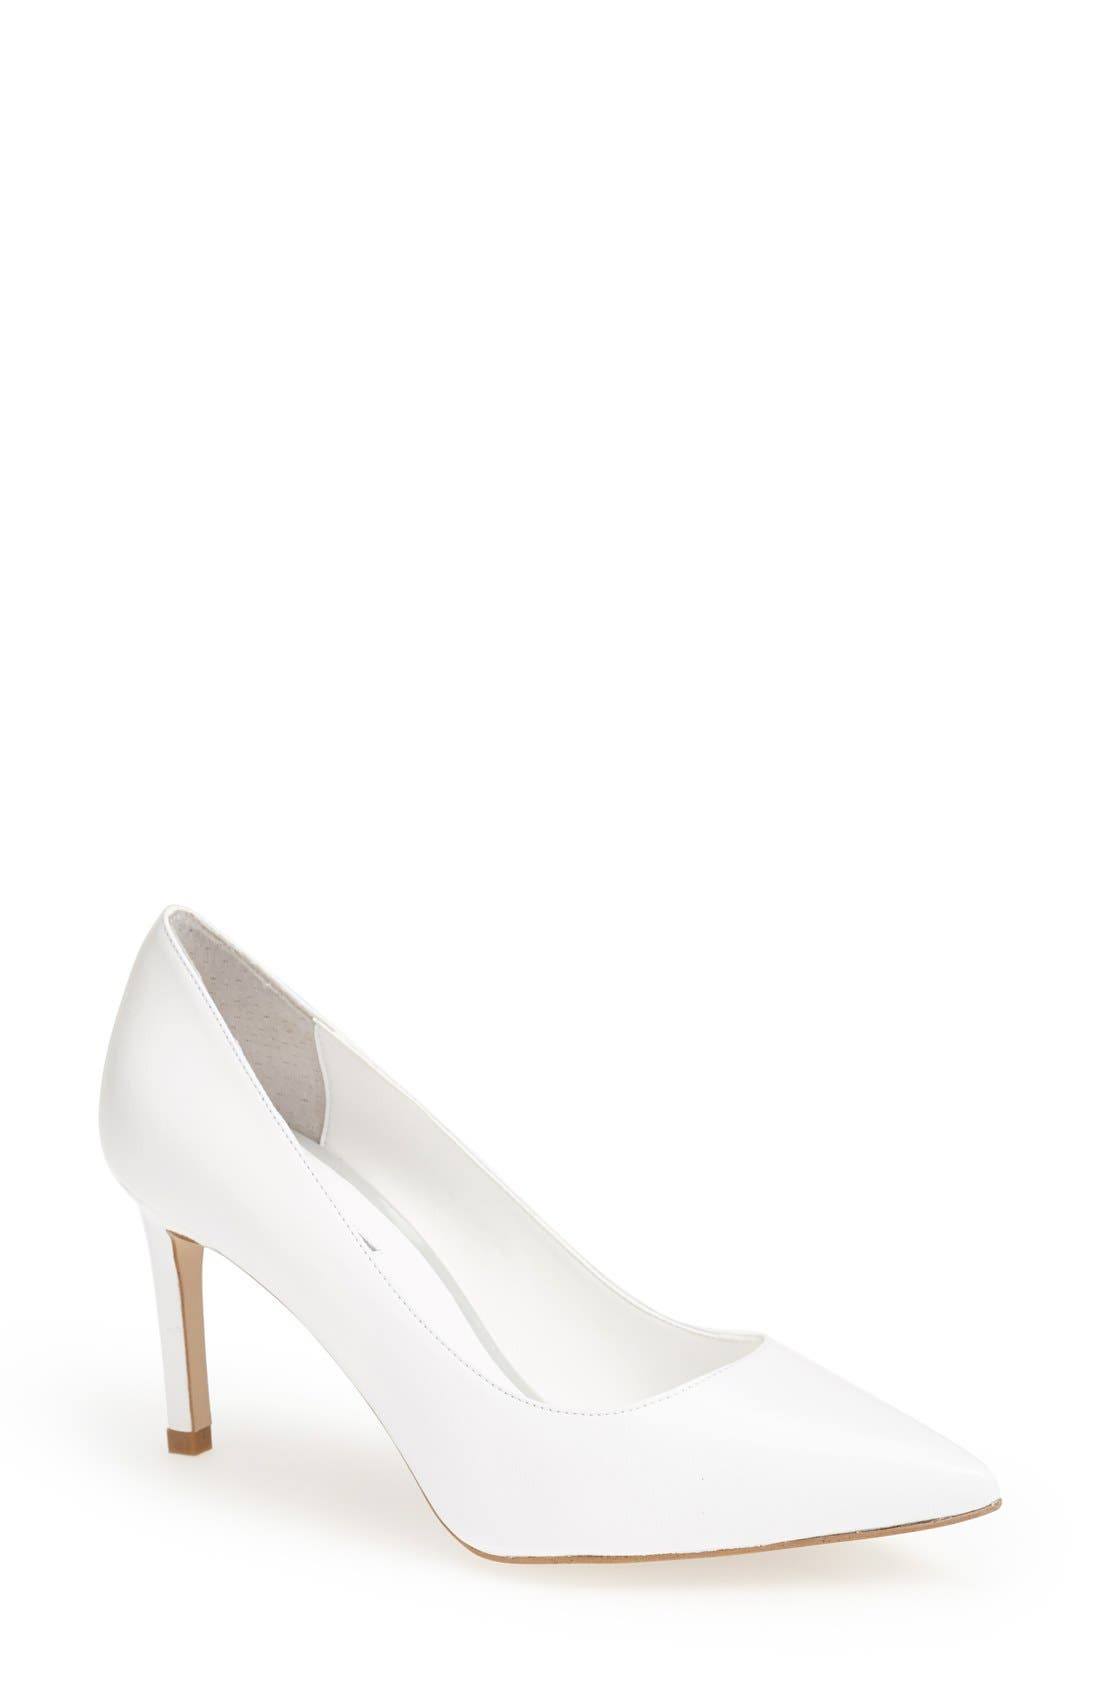 Alternate Image 1 Selected - Topshop 'Golden' Pointy Toe Pump (Women)